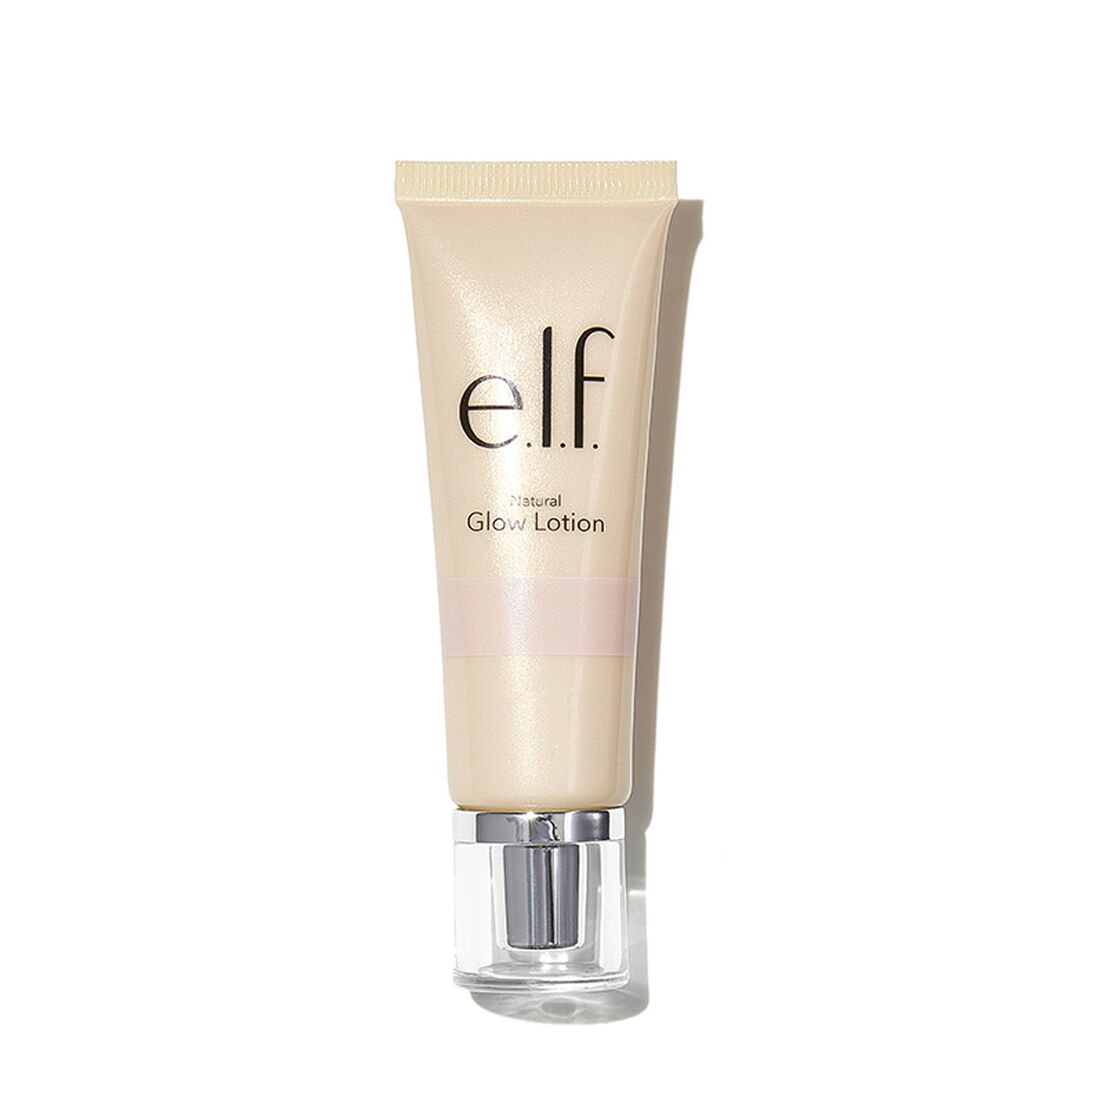 E.l.f Cosmetics - Beautifully Bare Natural Glow Lotion